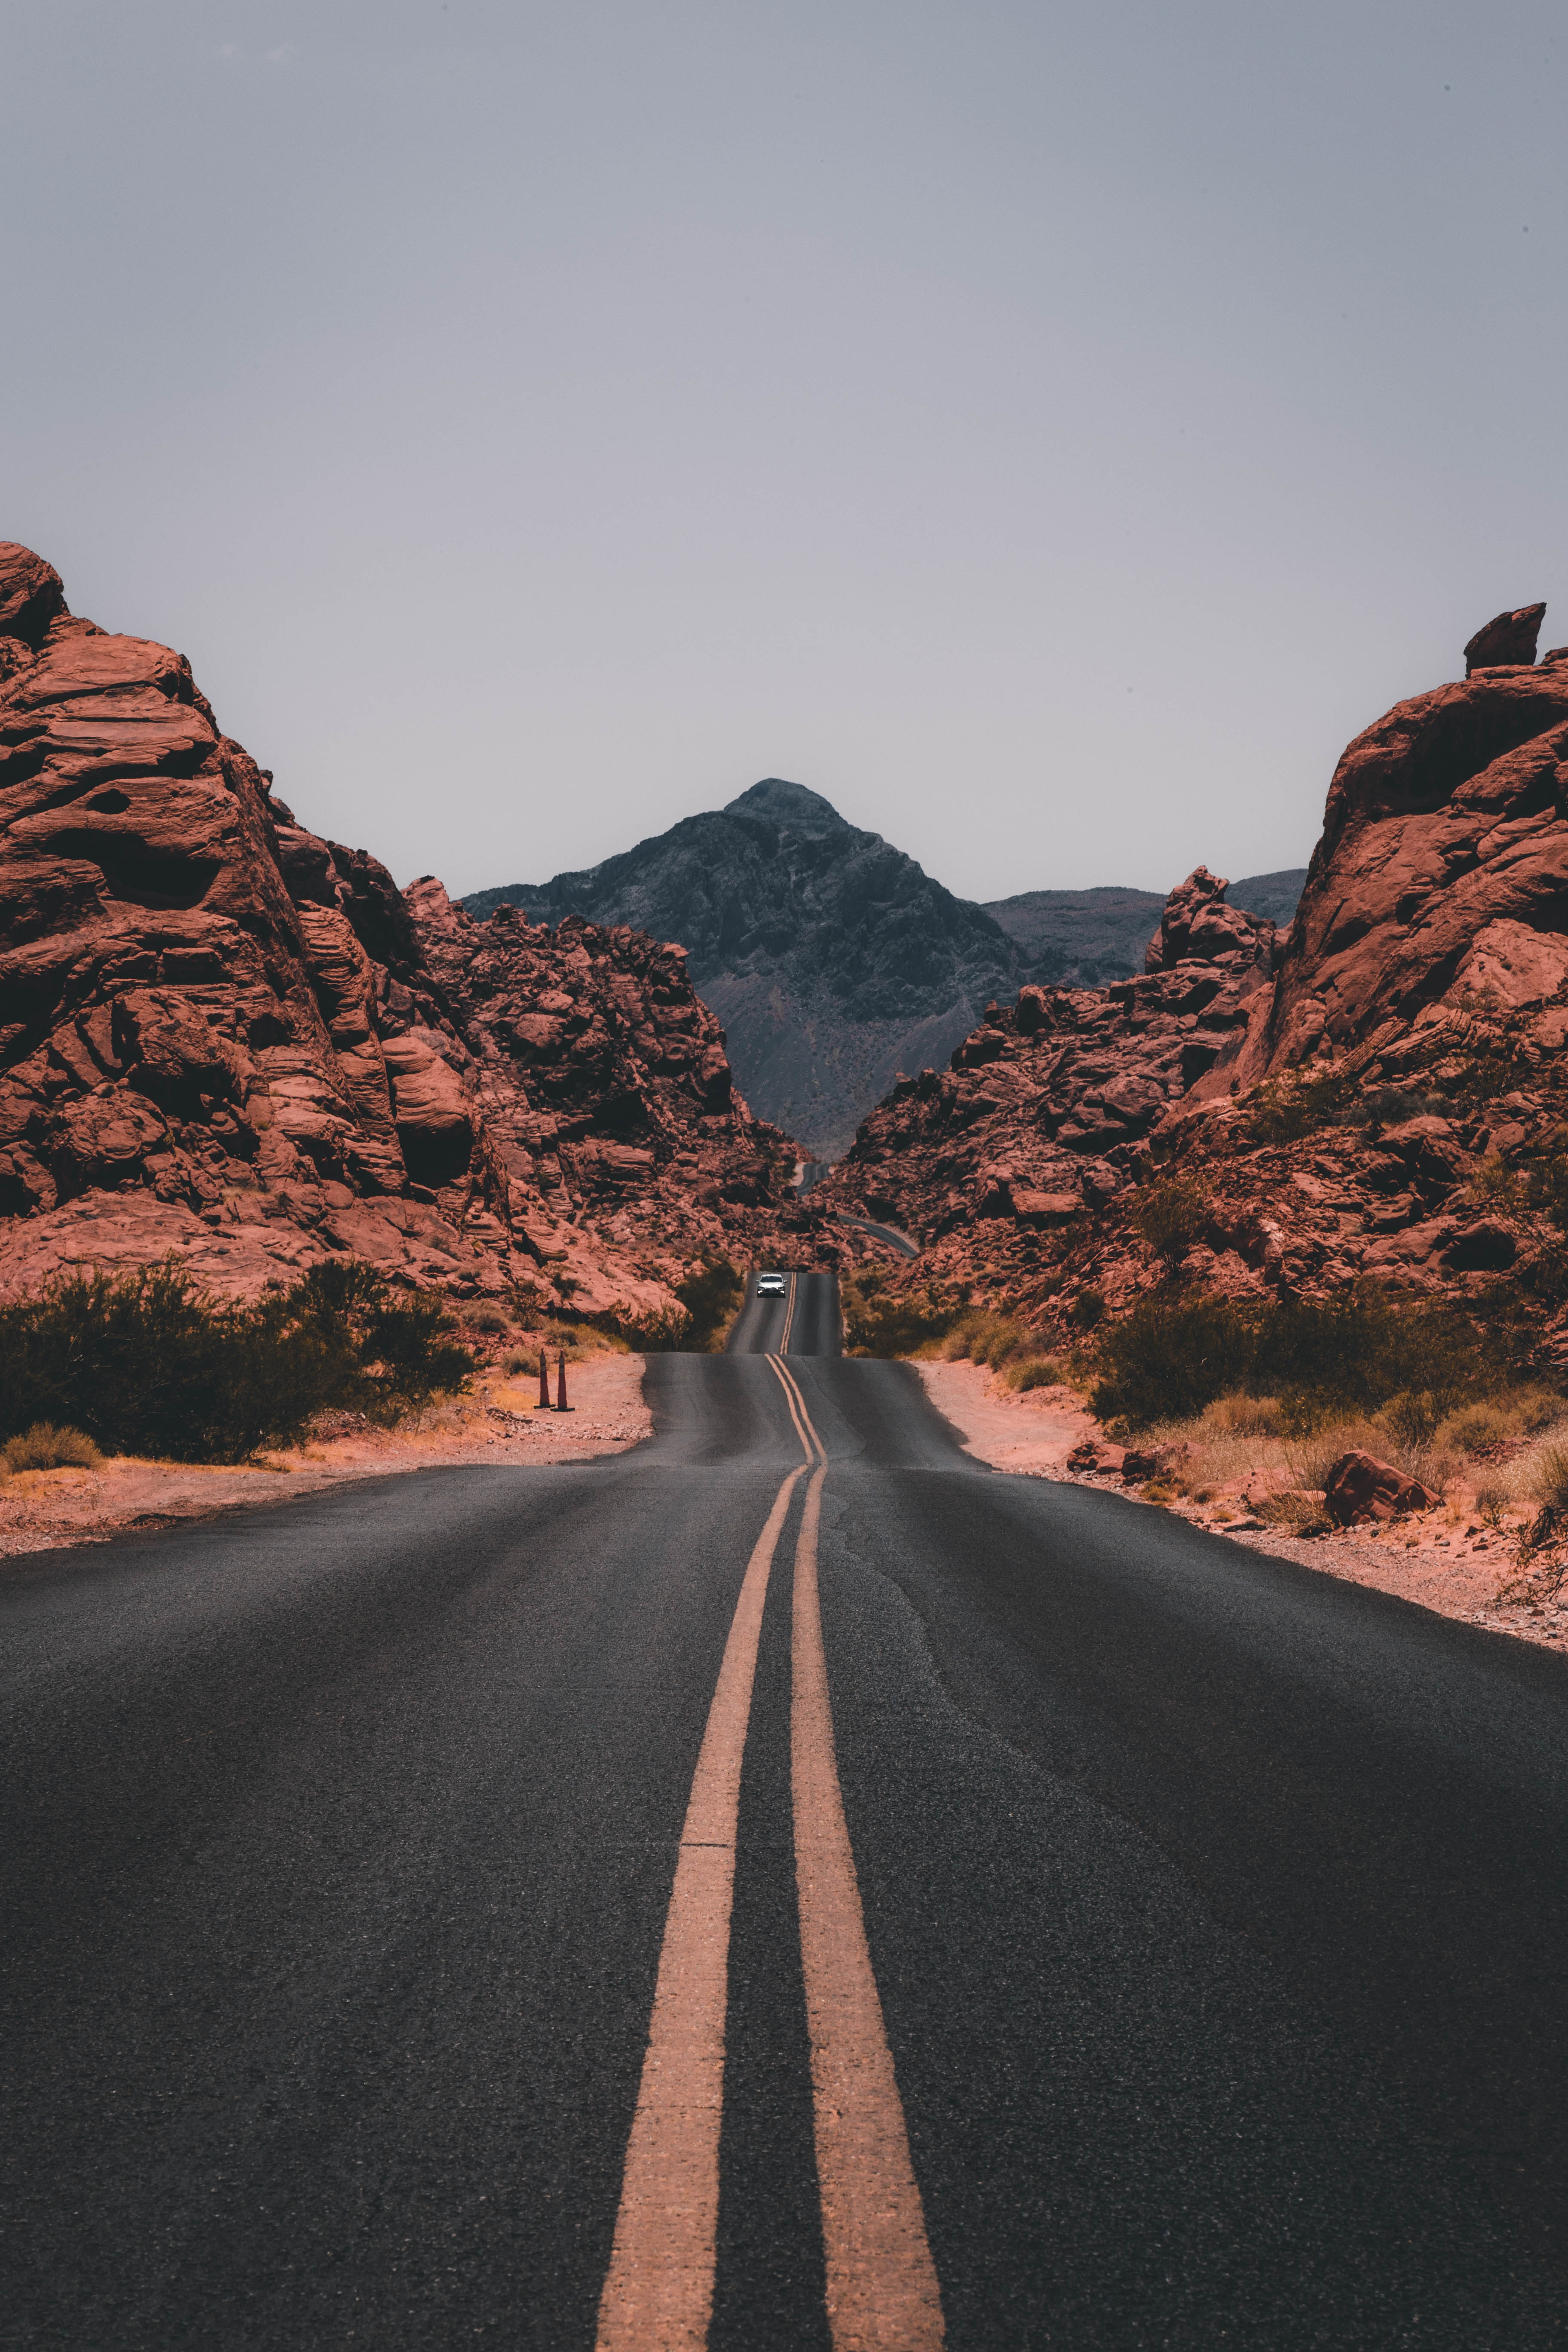 A highway road through rocky cliffs at Valley of Fire State Park